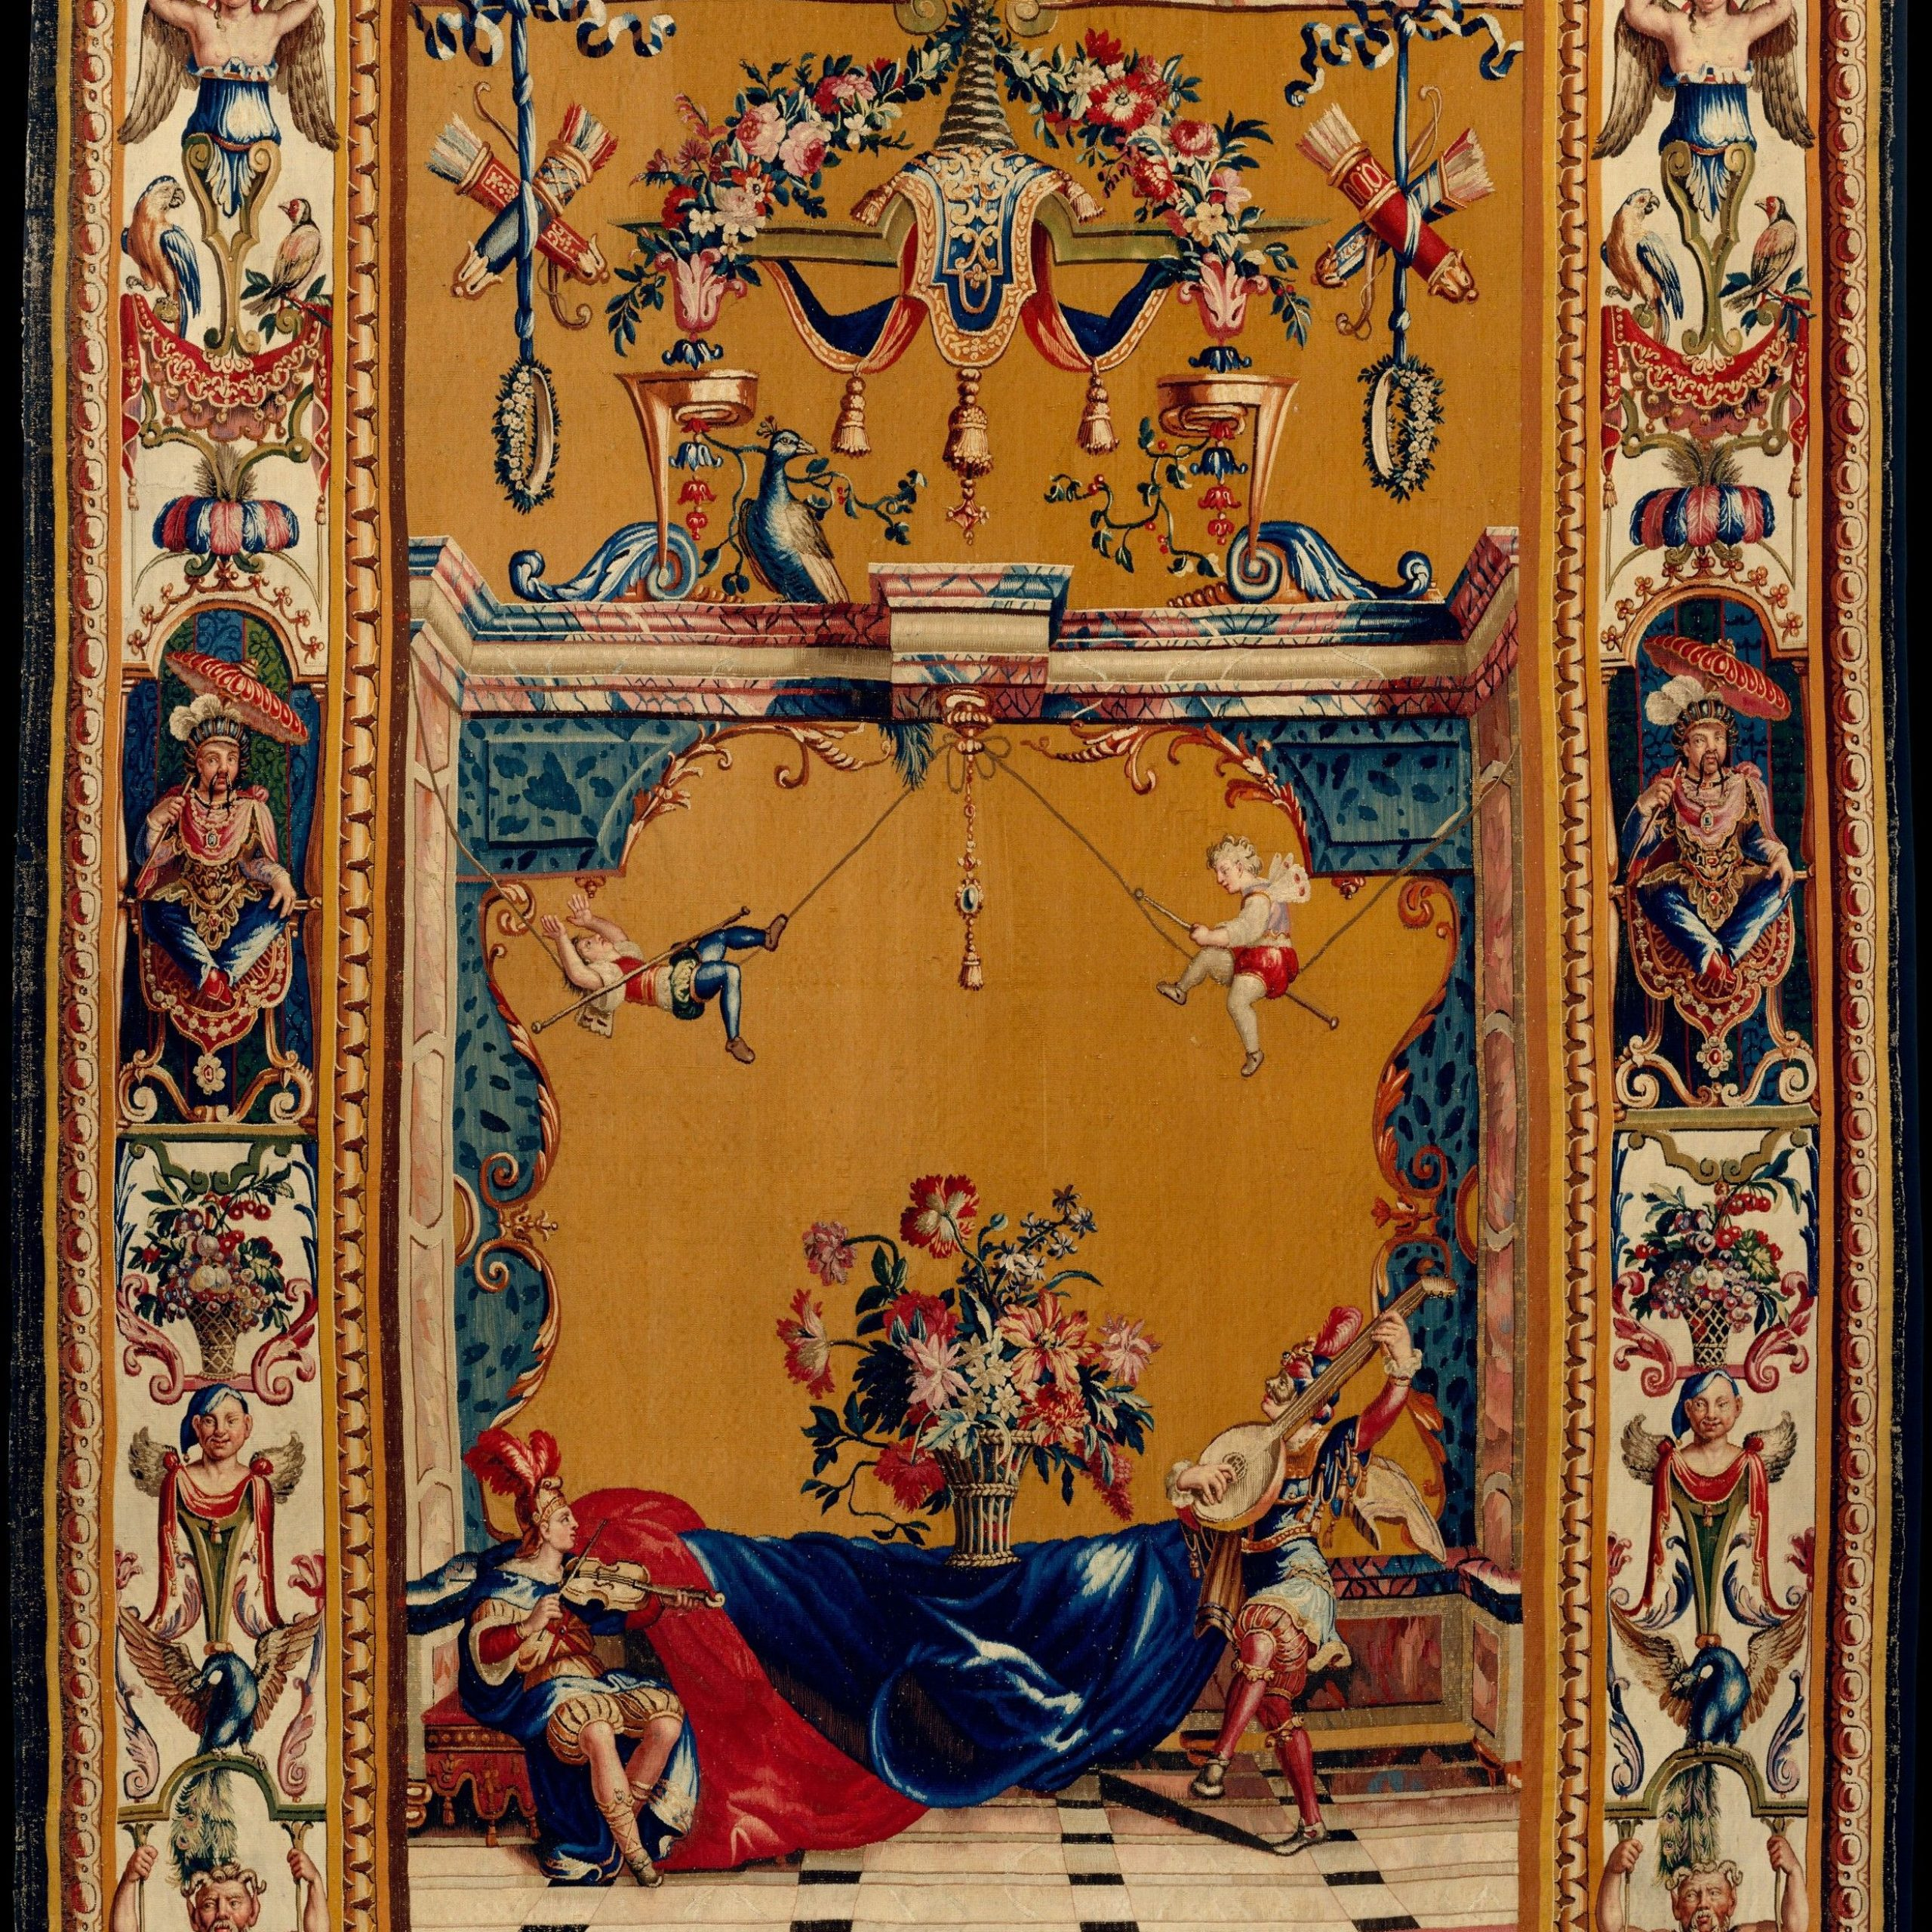 Violin And Lute Players From A Set Of Five Grotesques Jean Within Most Up To Date Blended Fabric Ethereal Days Chinoiserie Wall Hangings With Rod (View 9 of 20)